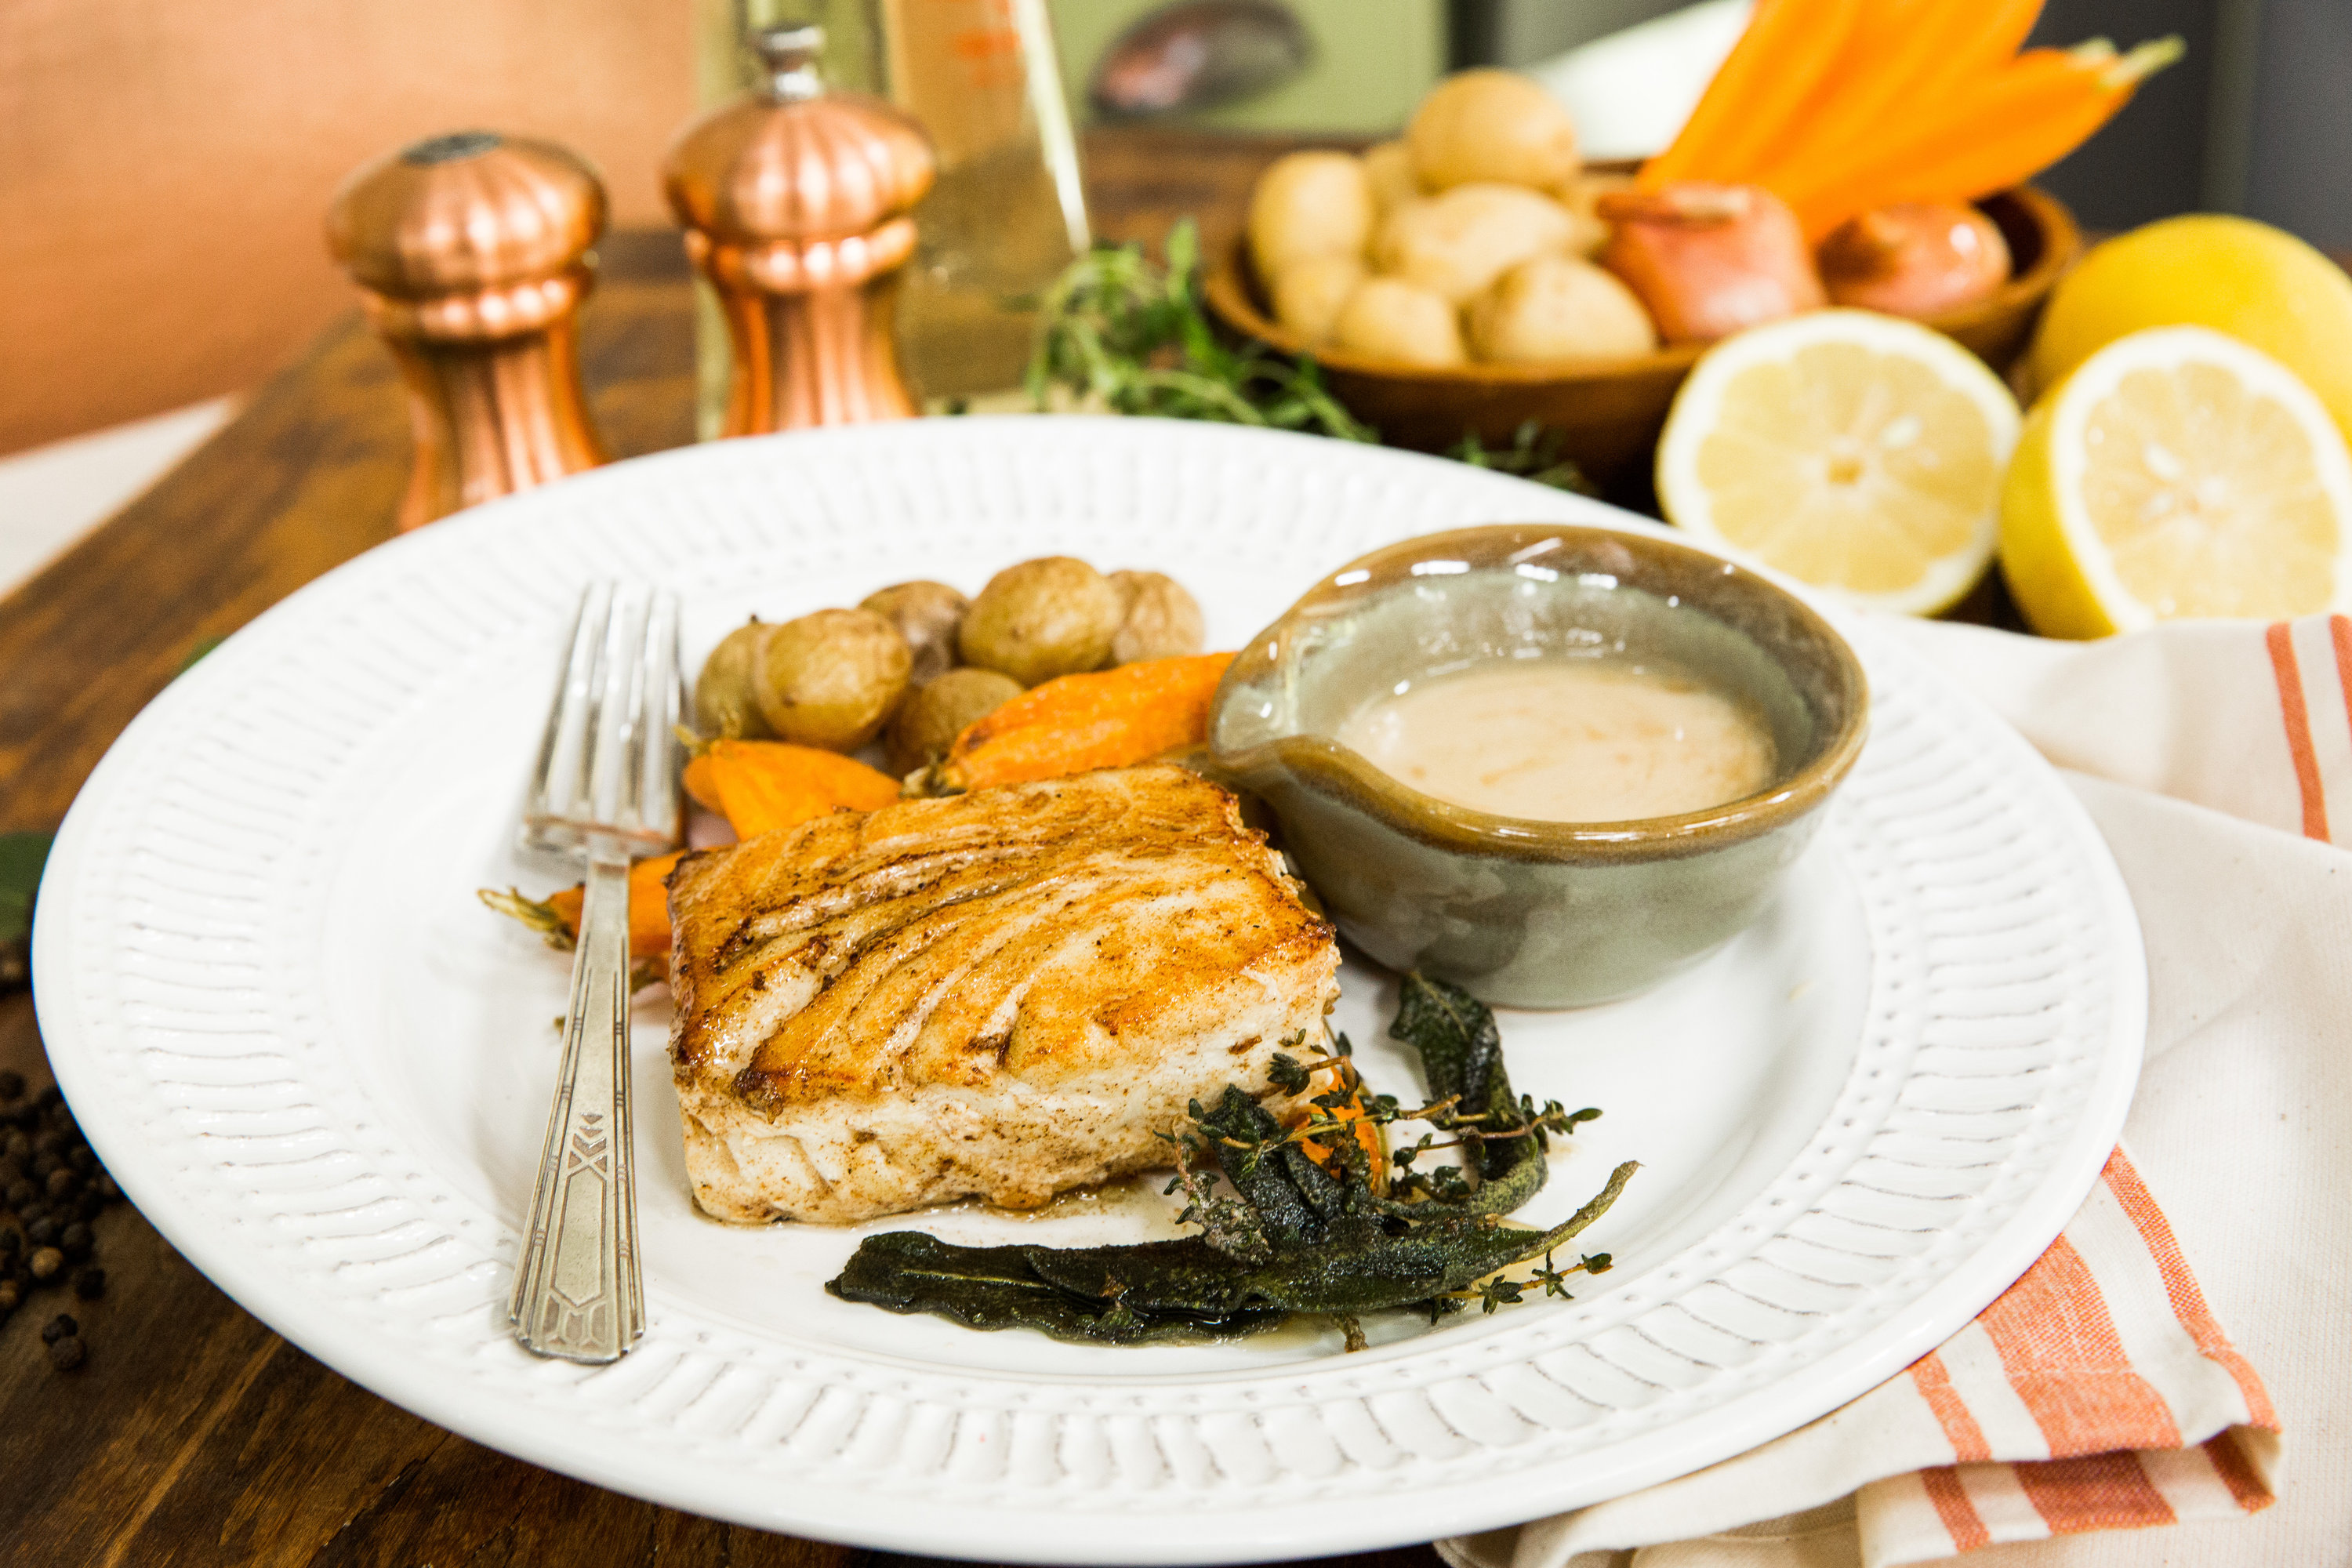 recipes - grilled halibut with beurre blanc sauce | home & family